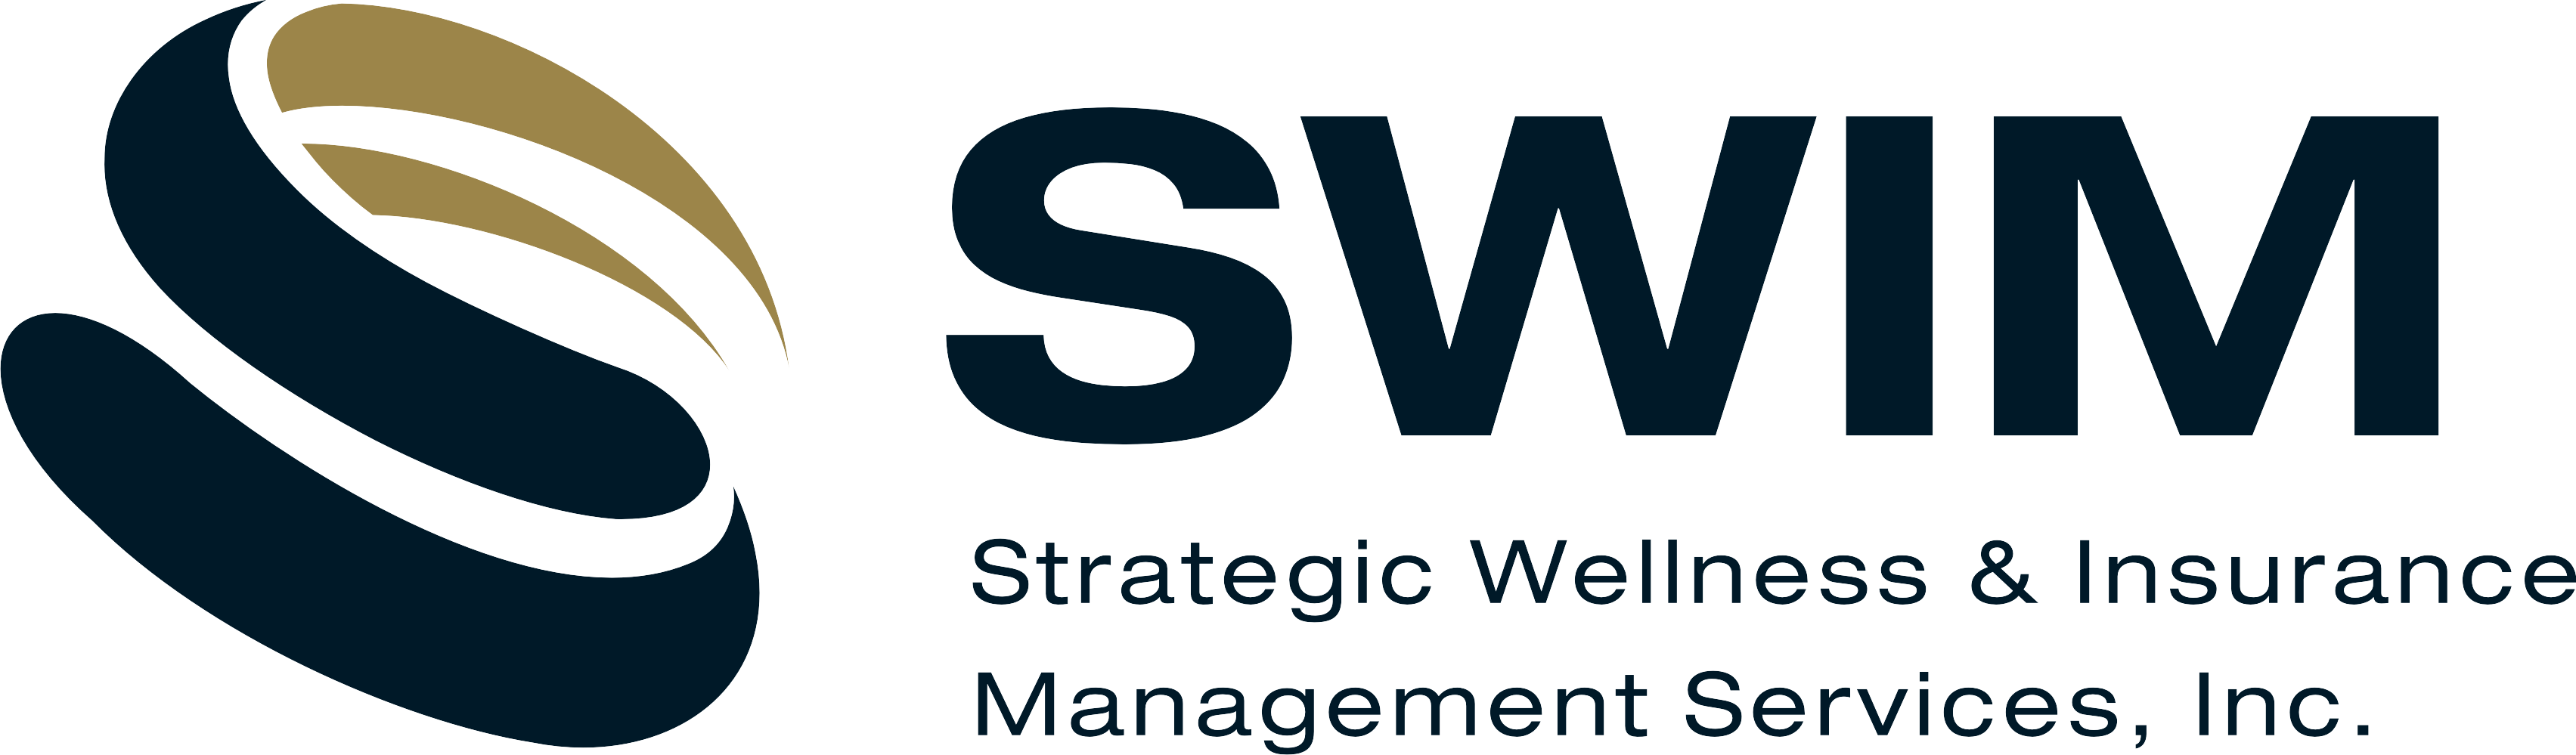 Strategic Wellness & Insurance Management Services - The employee benefits broker and group health insurance advisor in New York